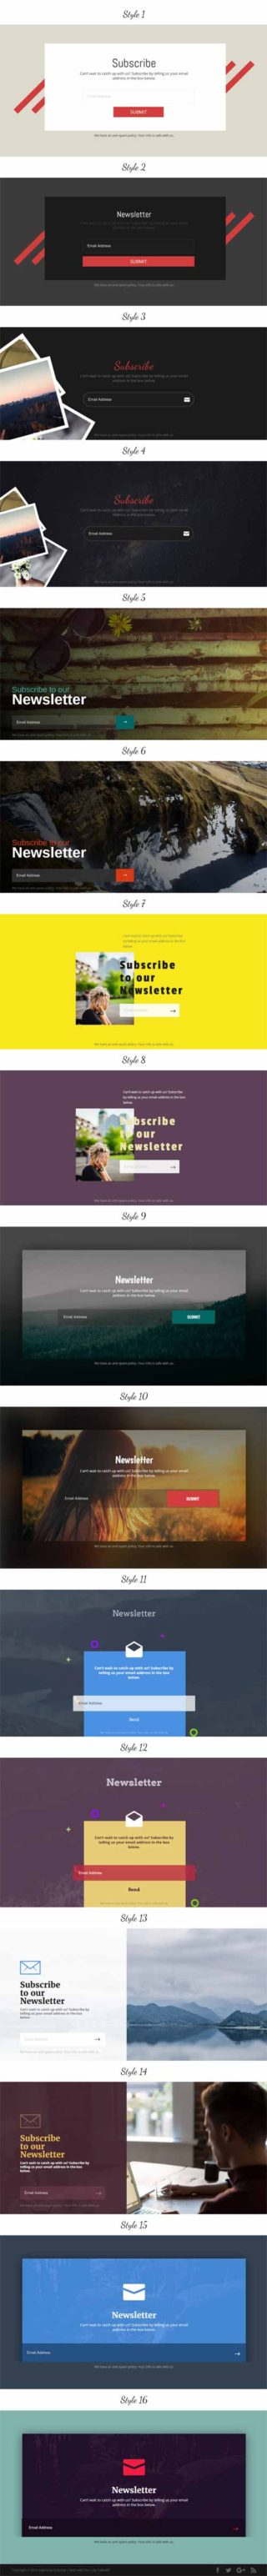 email signup layout for divi